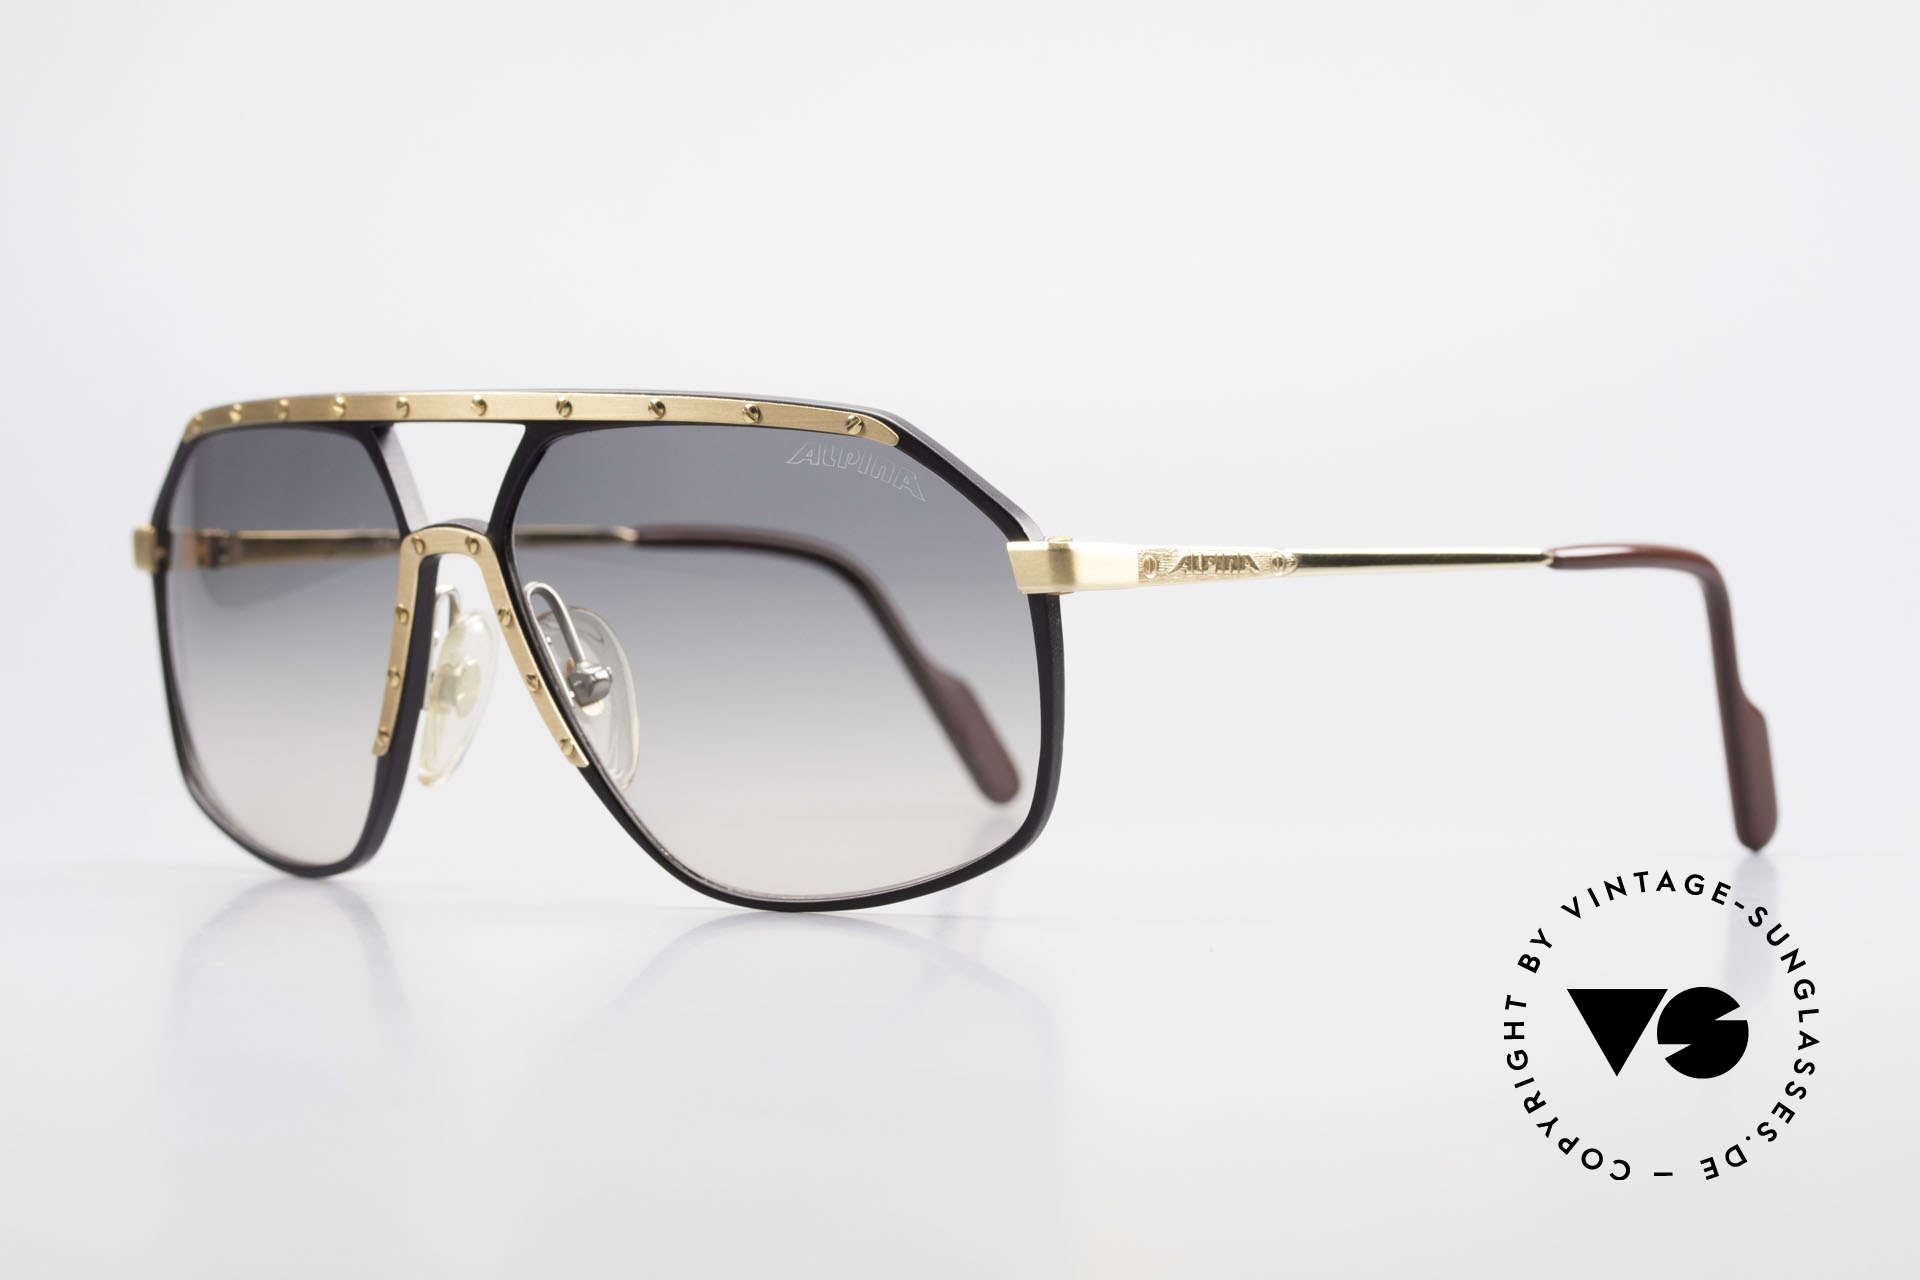 Alpina M6 True Vintage 80's Sunglasses, produced in many different variations; HANDMADE, Made for Men and Women